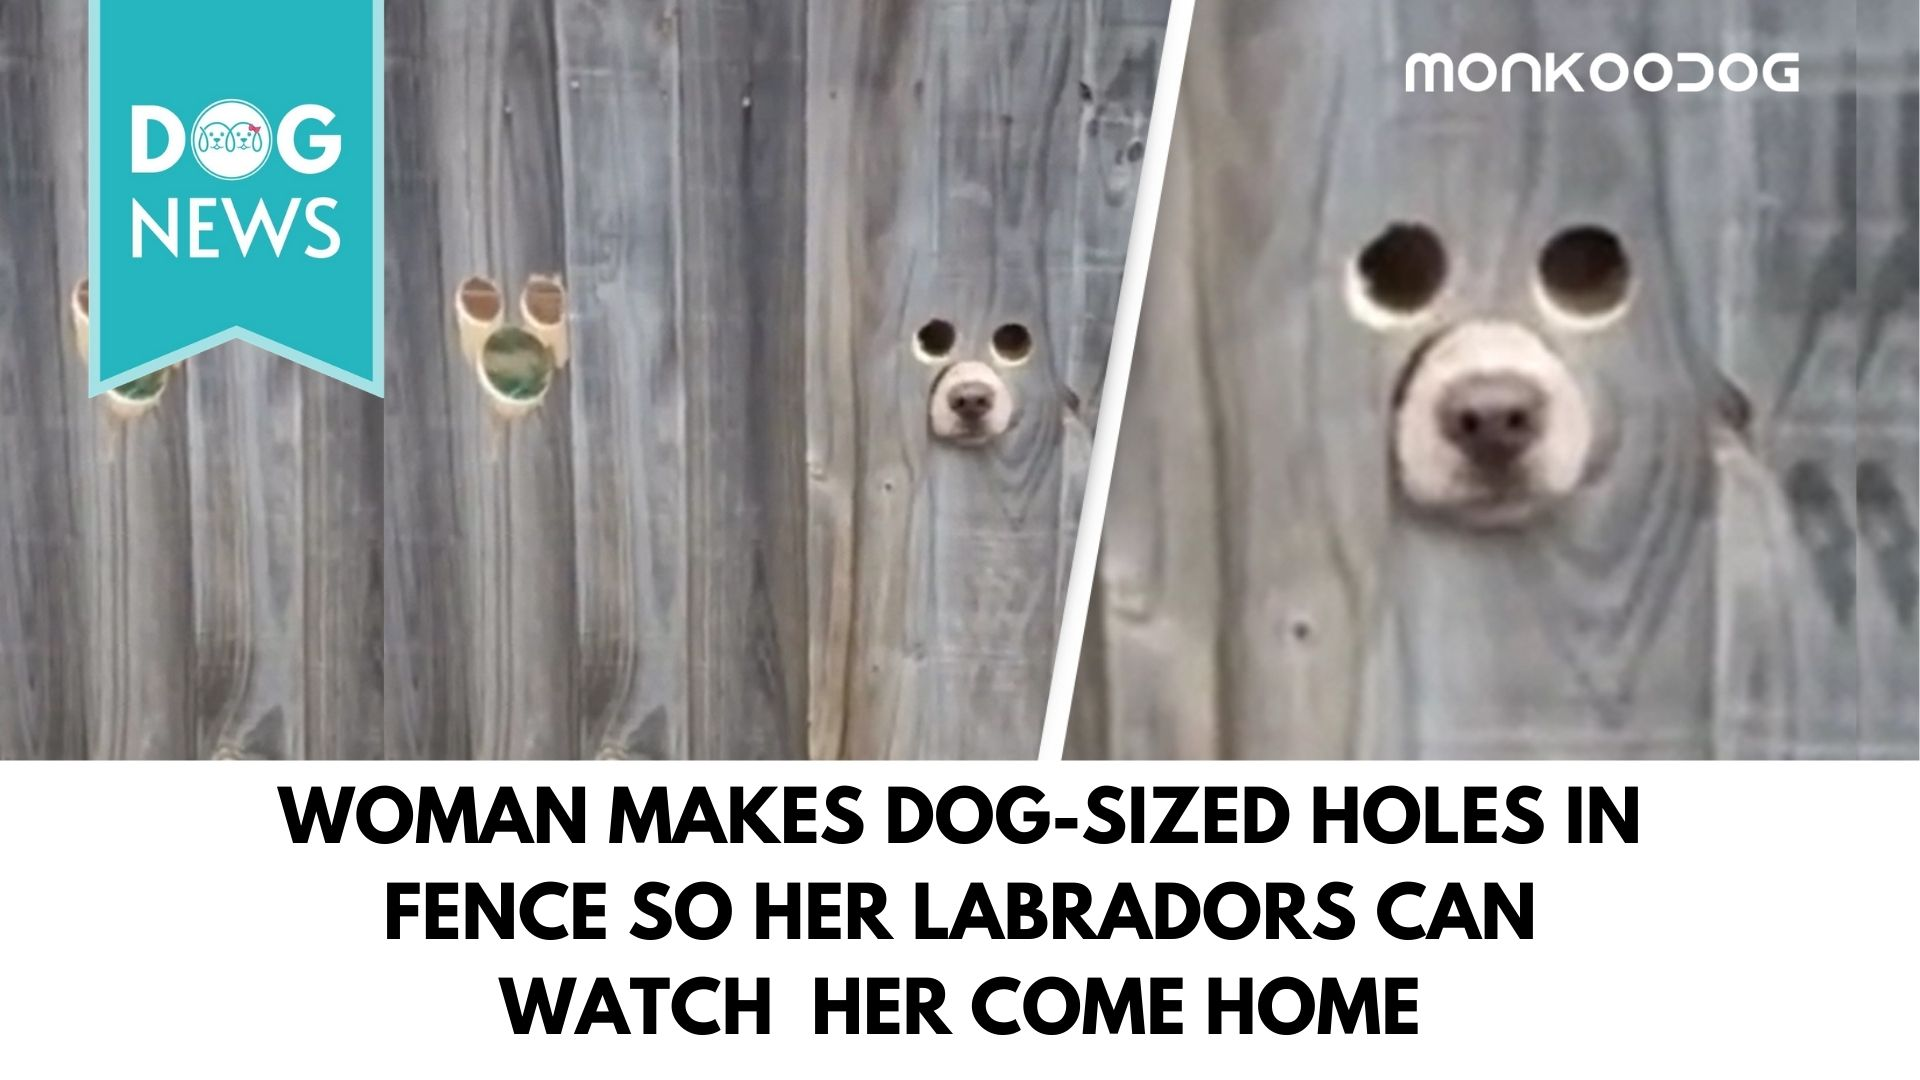 Woman Makes Dog-Sized Holes In Fence So her Labradors Can watch her come home